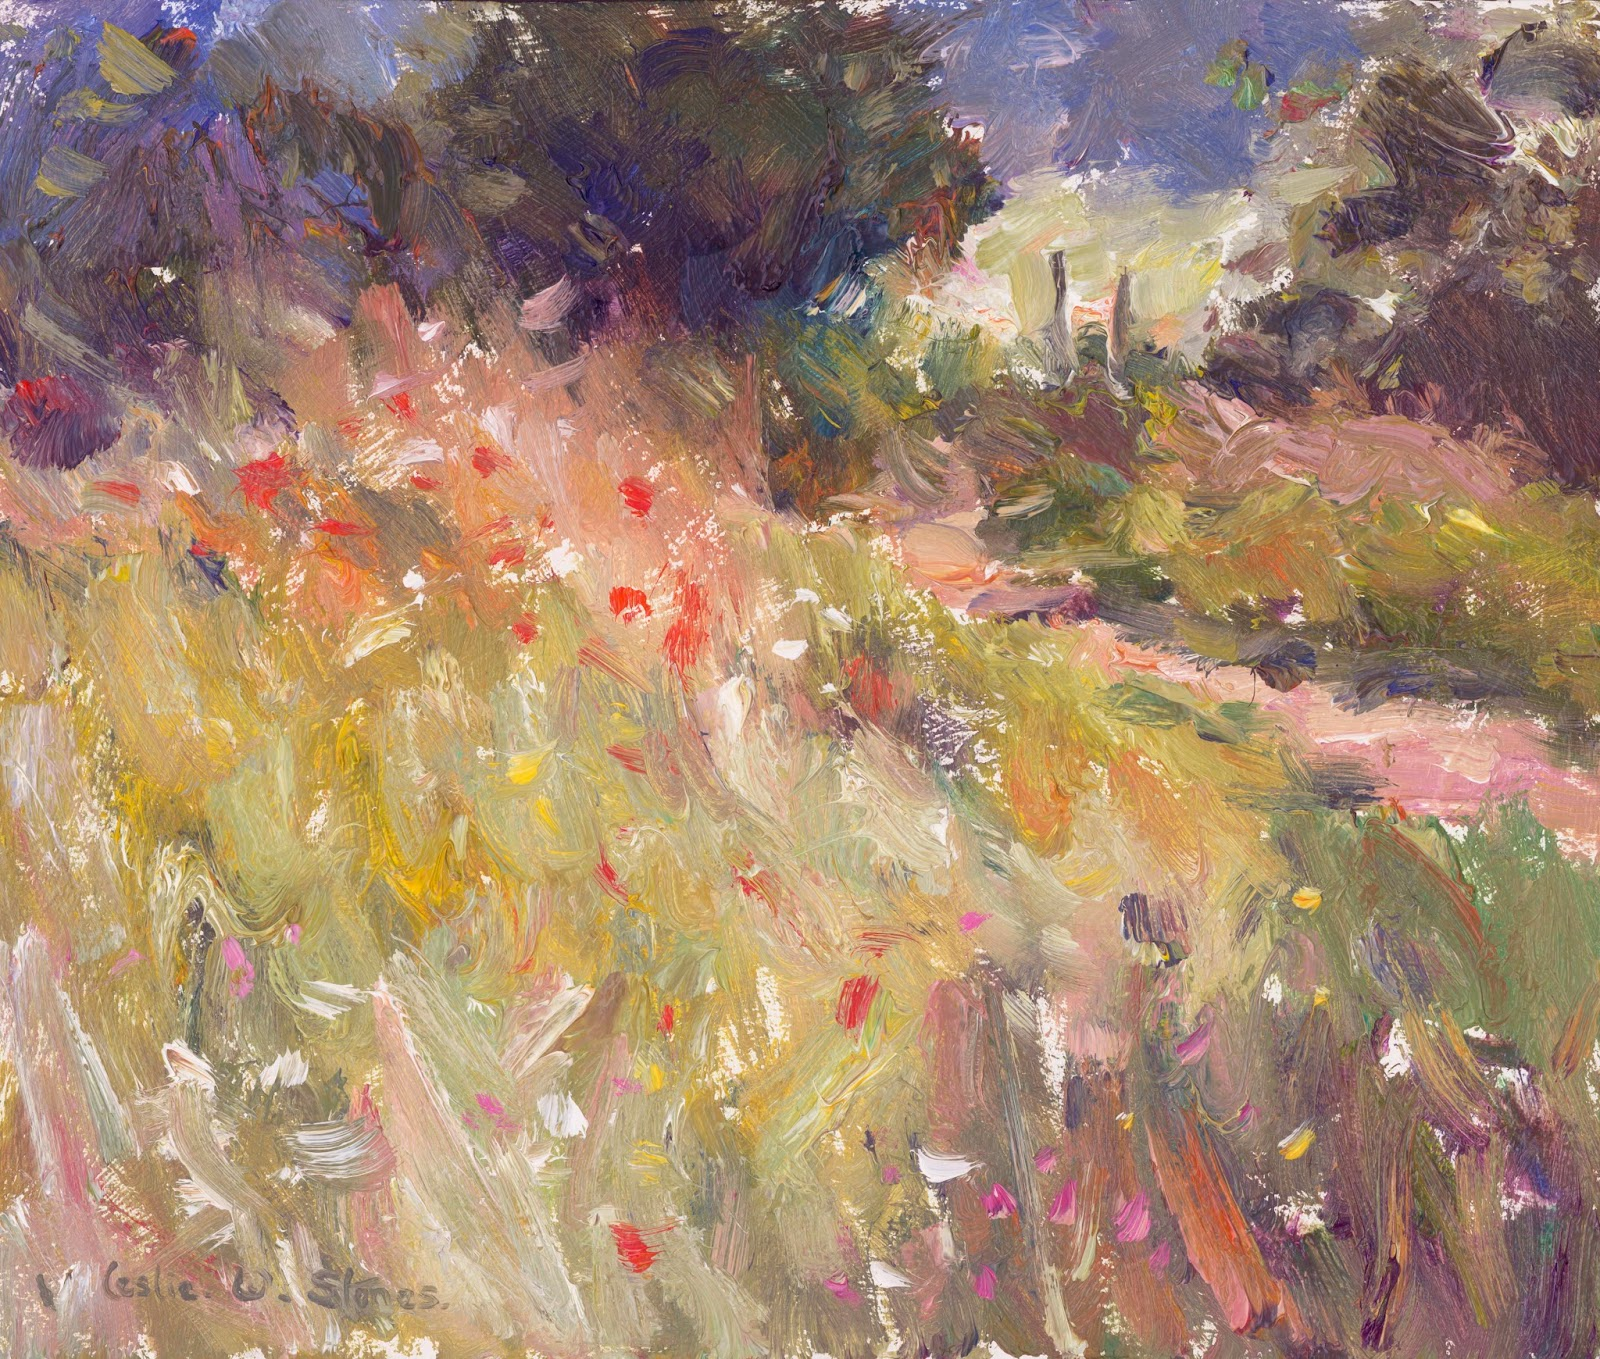 Painting of poppies in a field